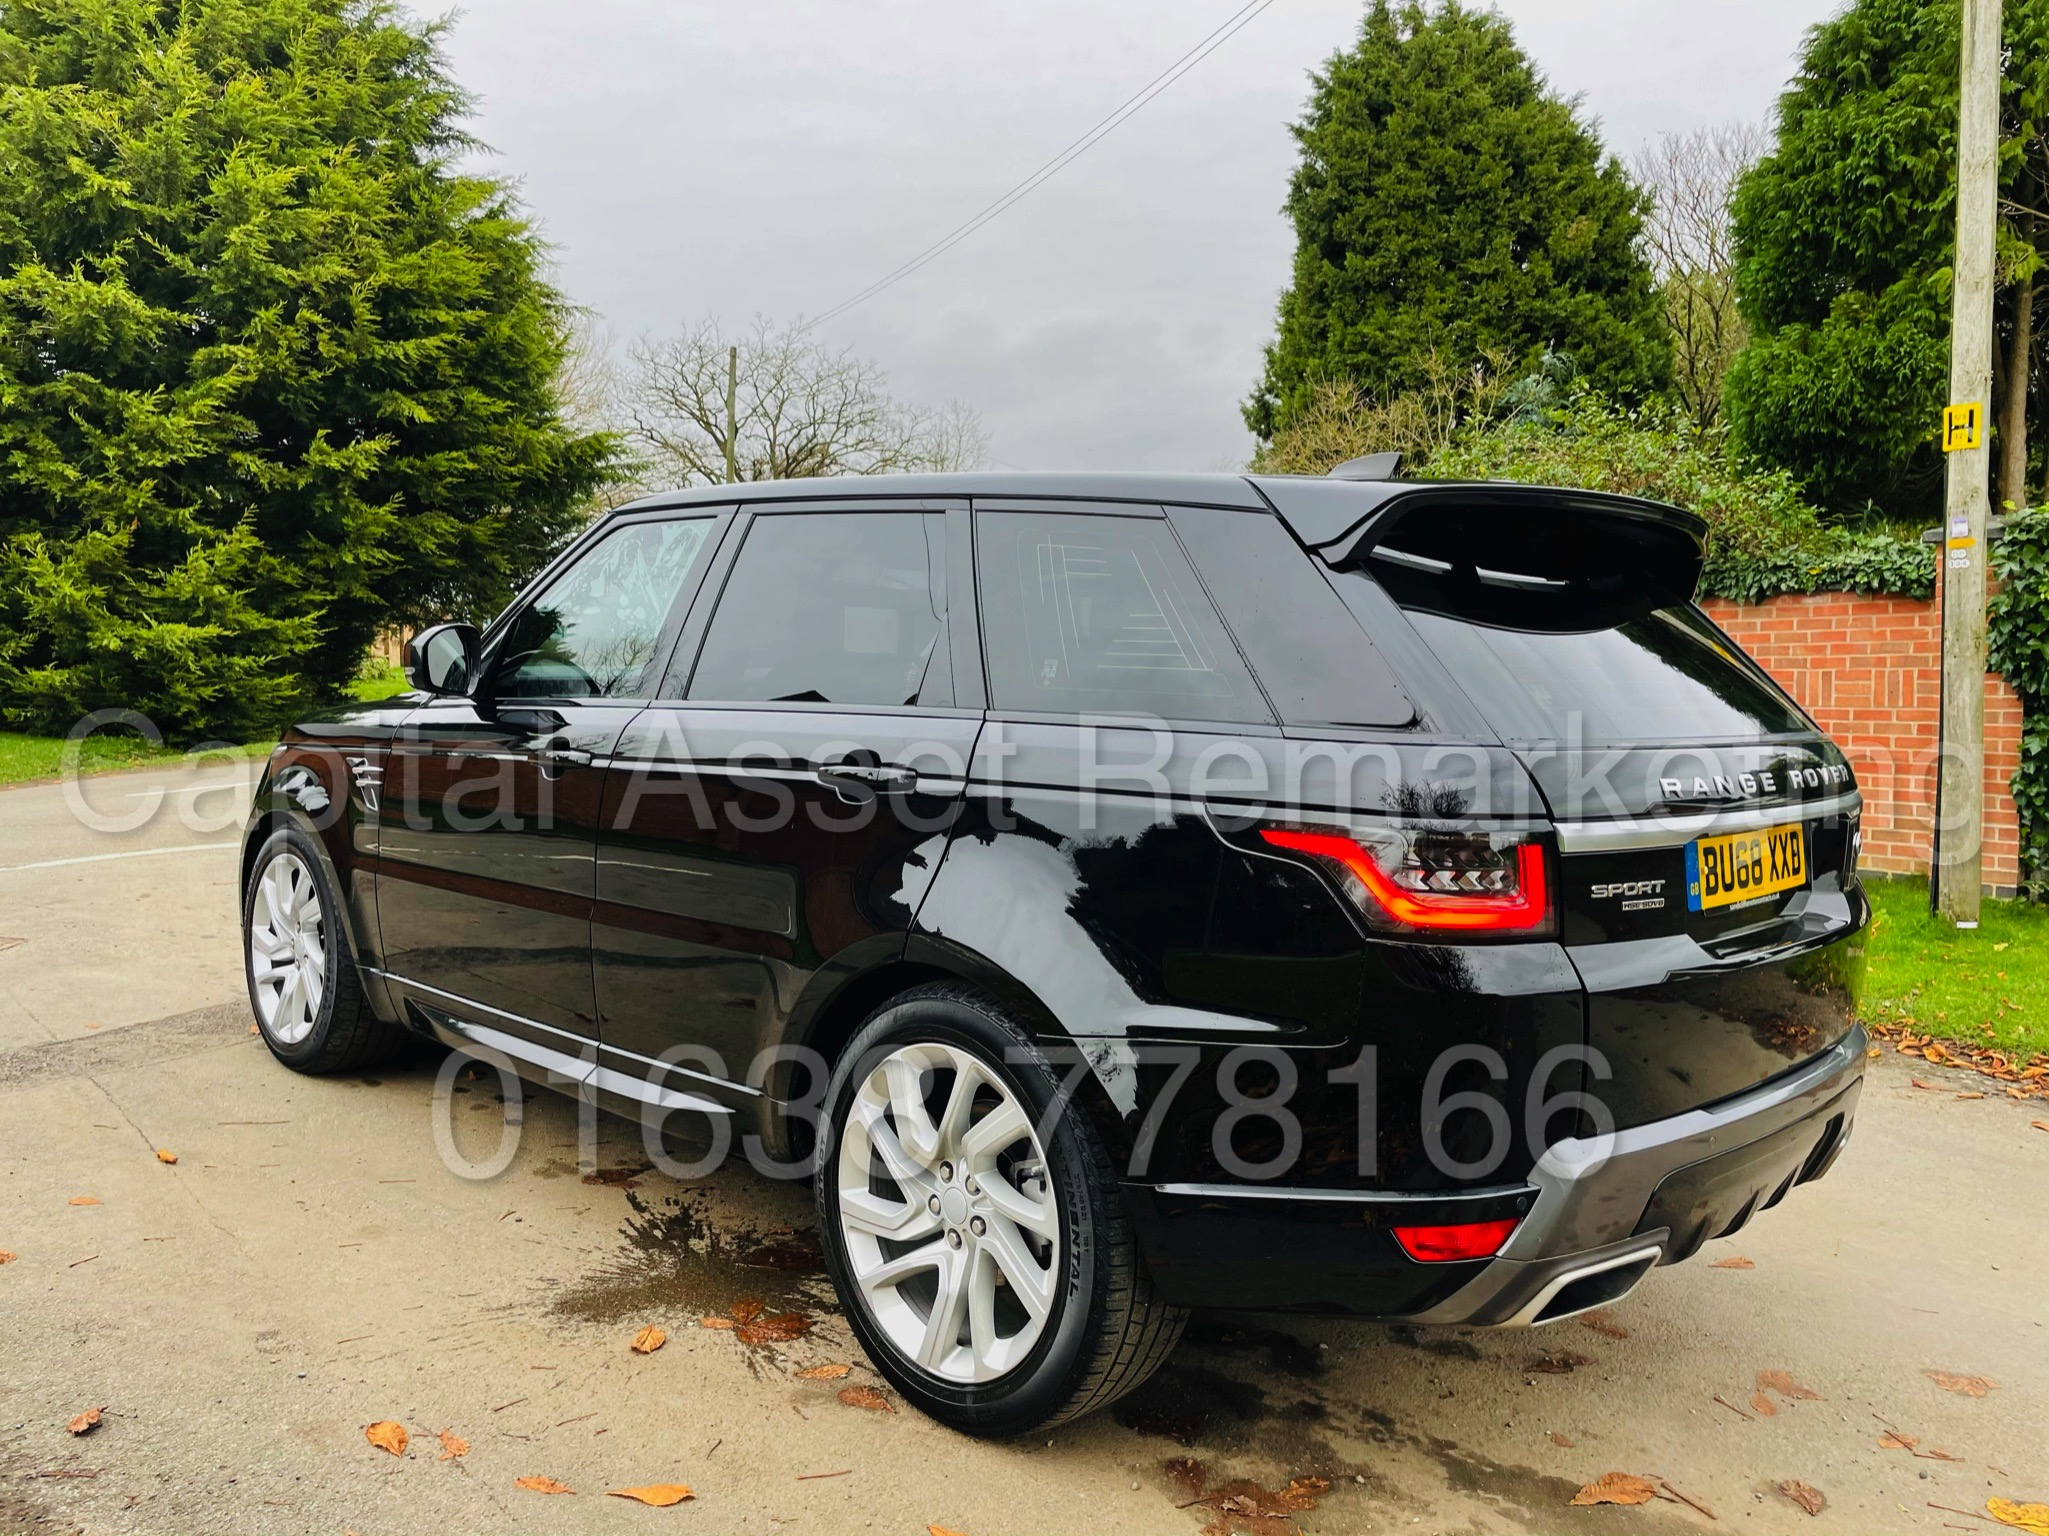 RANGE ROVER SPORT *HSE EDITION* SUV (2019 MODEL) '3.0 SDV6 - 306 BHP - 8 SPEED AUTO' *FULLY LOADED* - Image 9 of 56